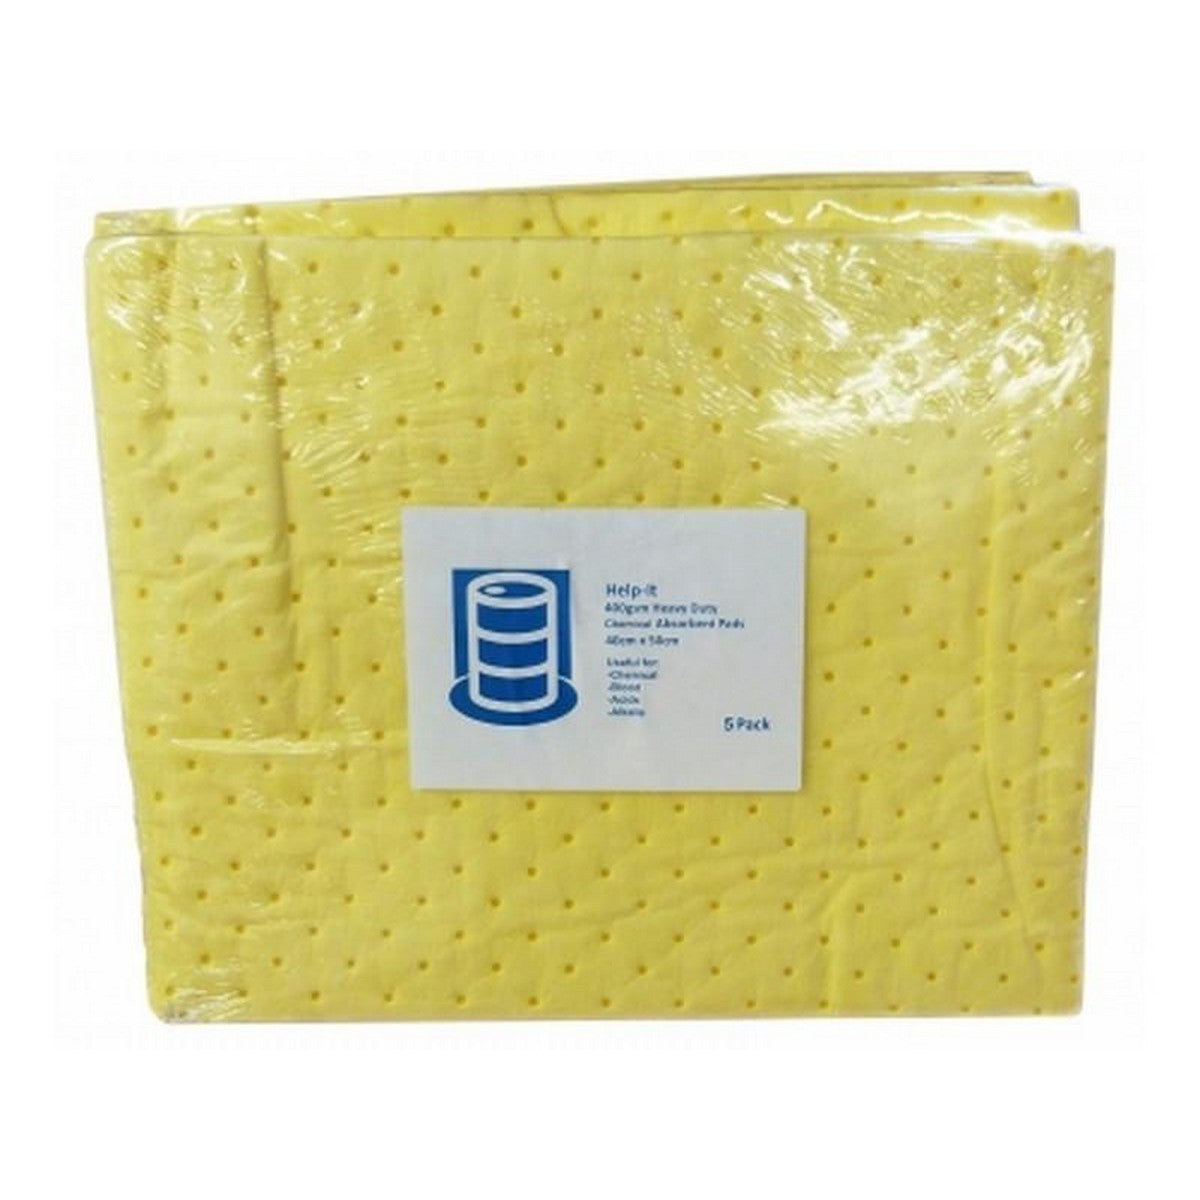 Image of Synthetic Chemical Pad- EACH